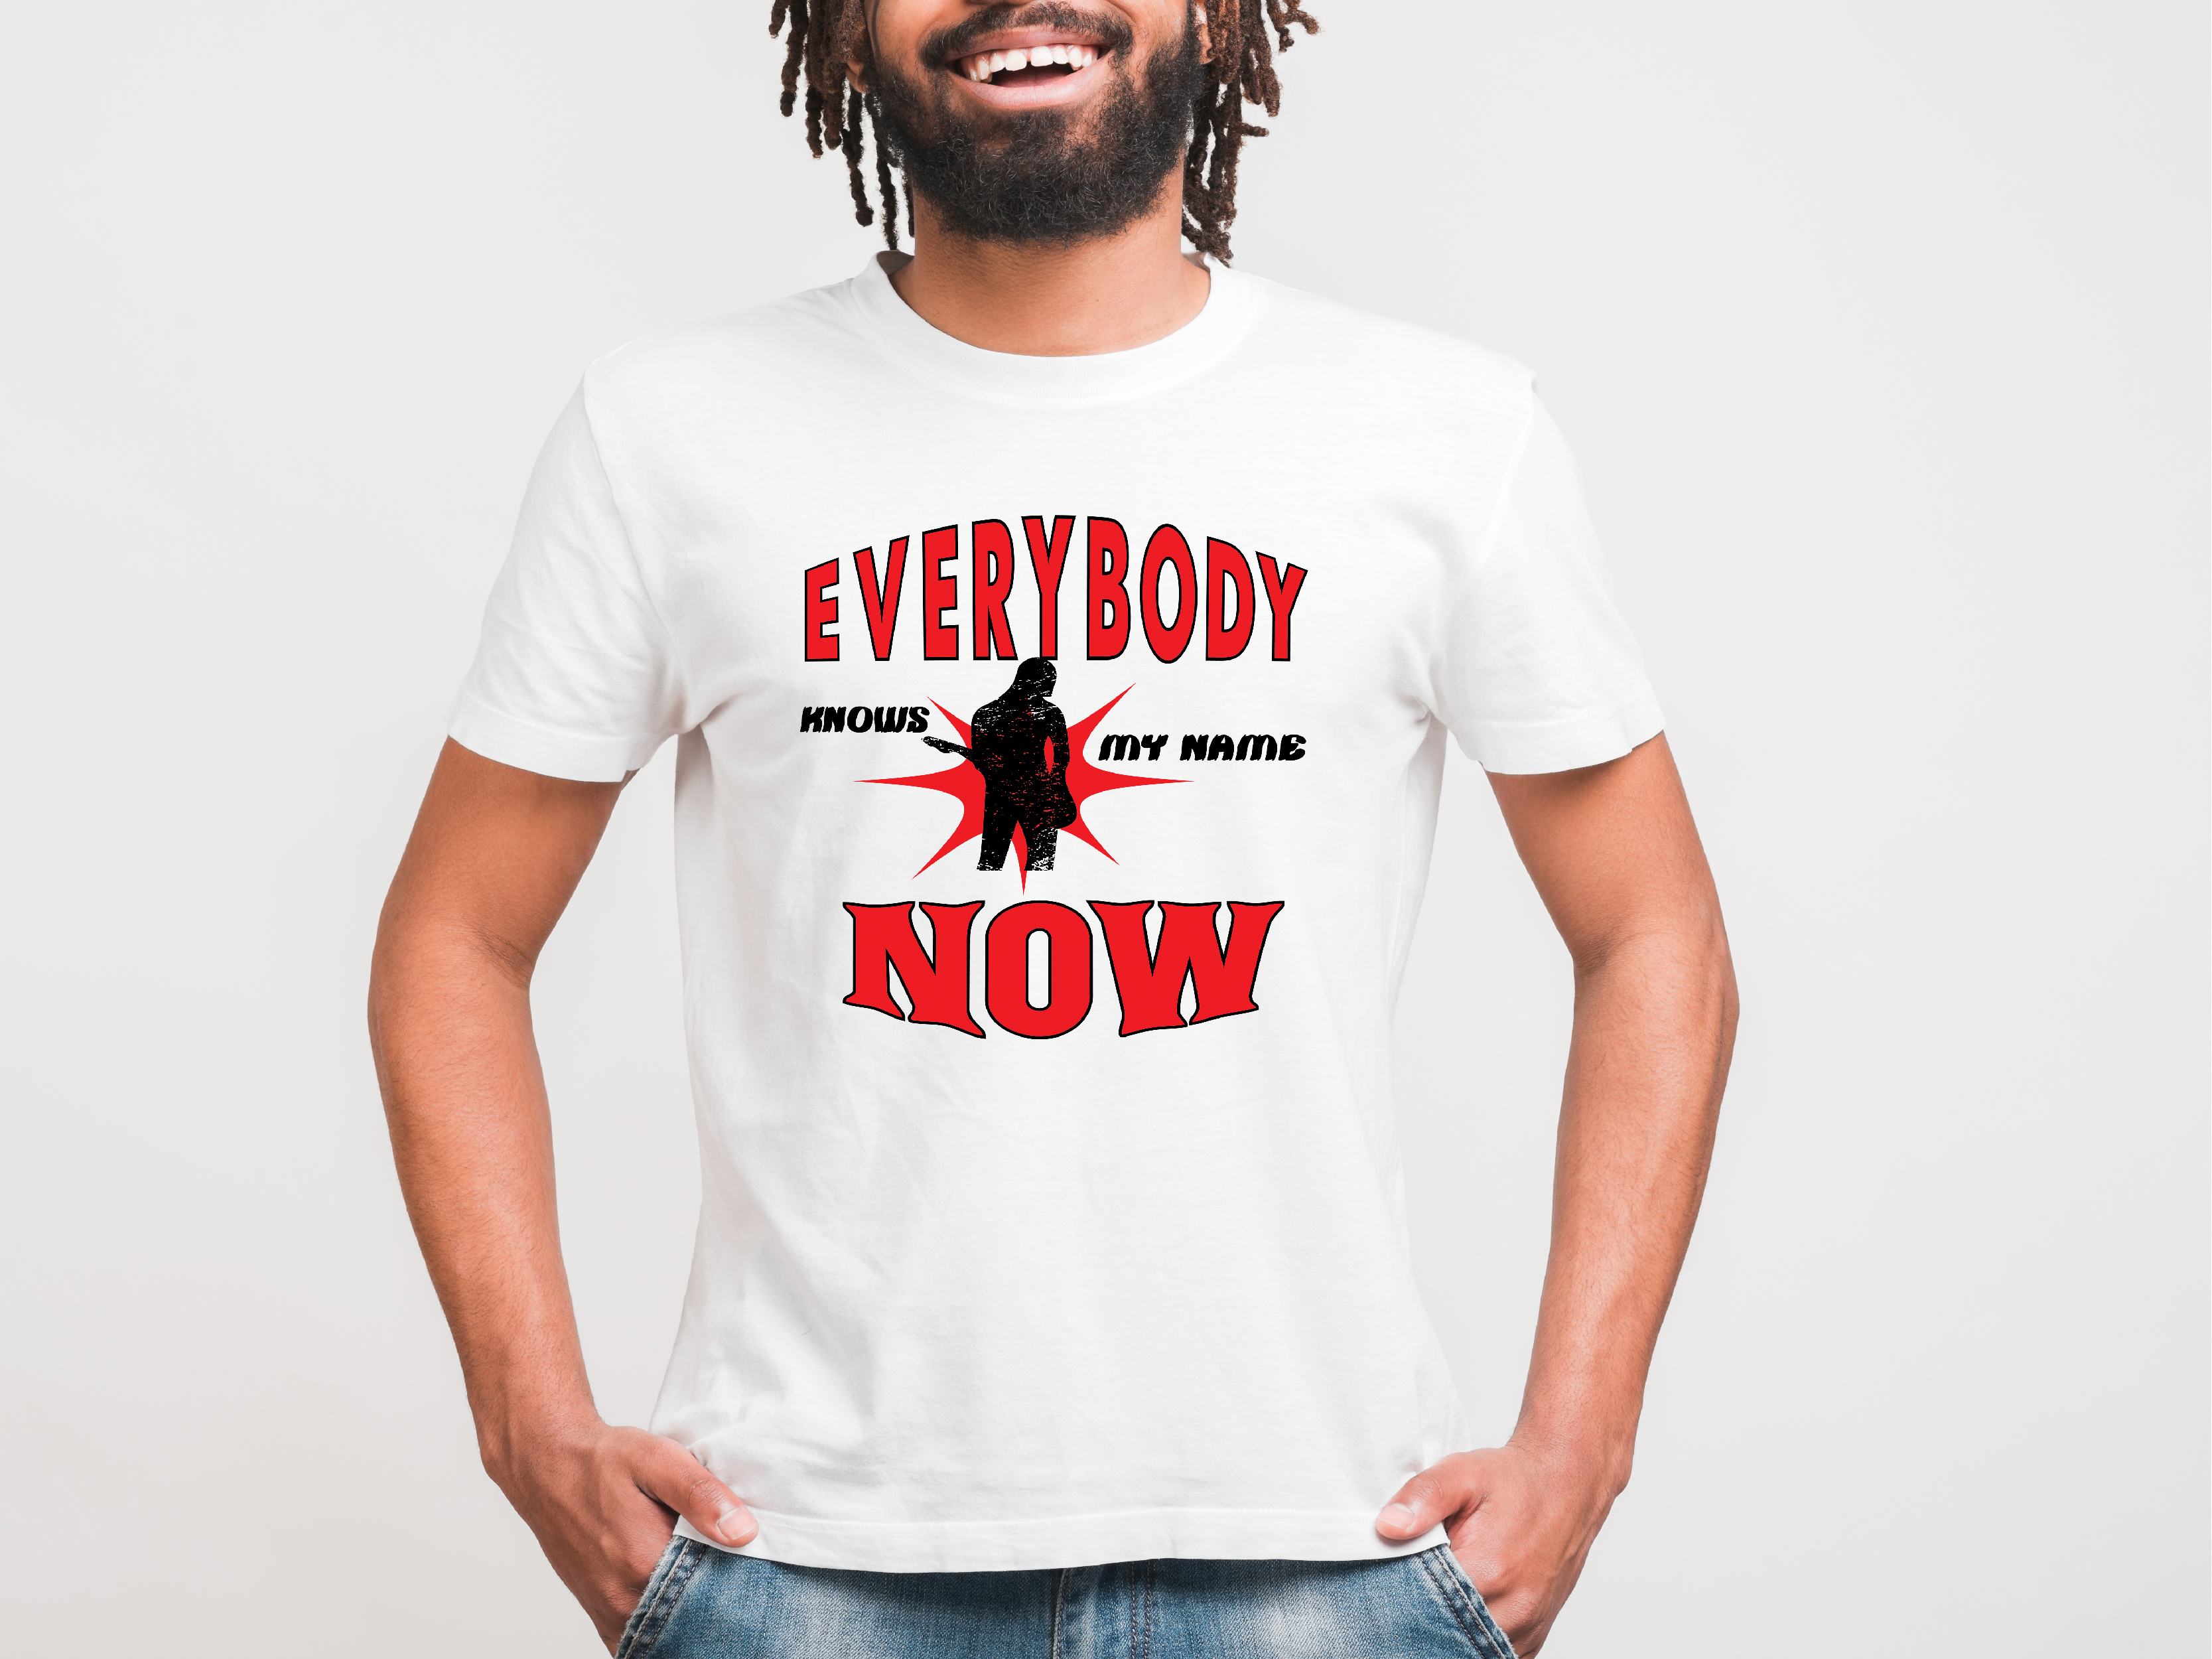 I will do looking Attractive, meaningful and modern T-shirt design